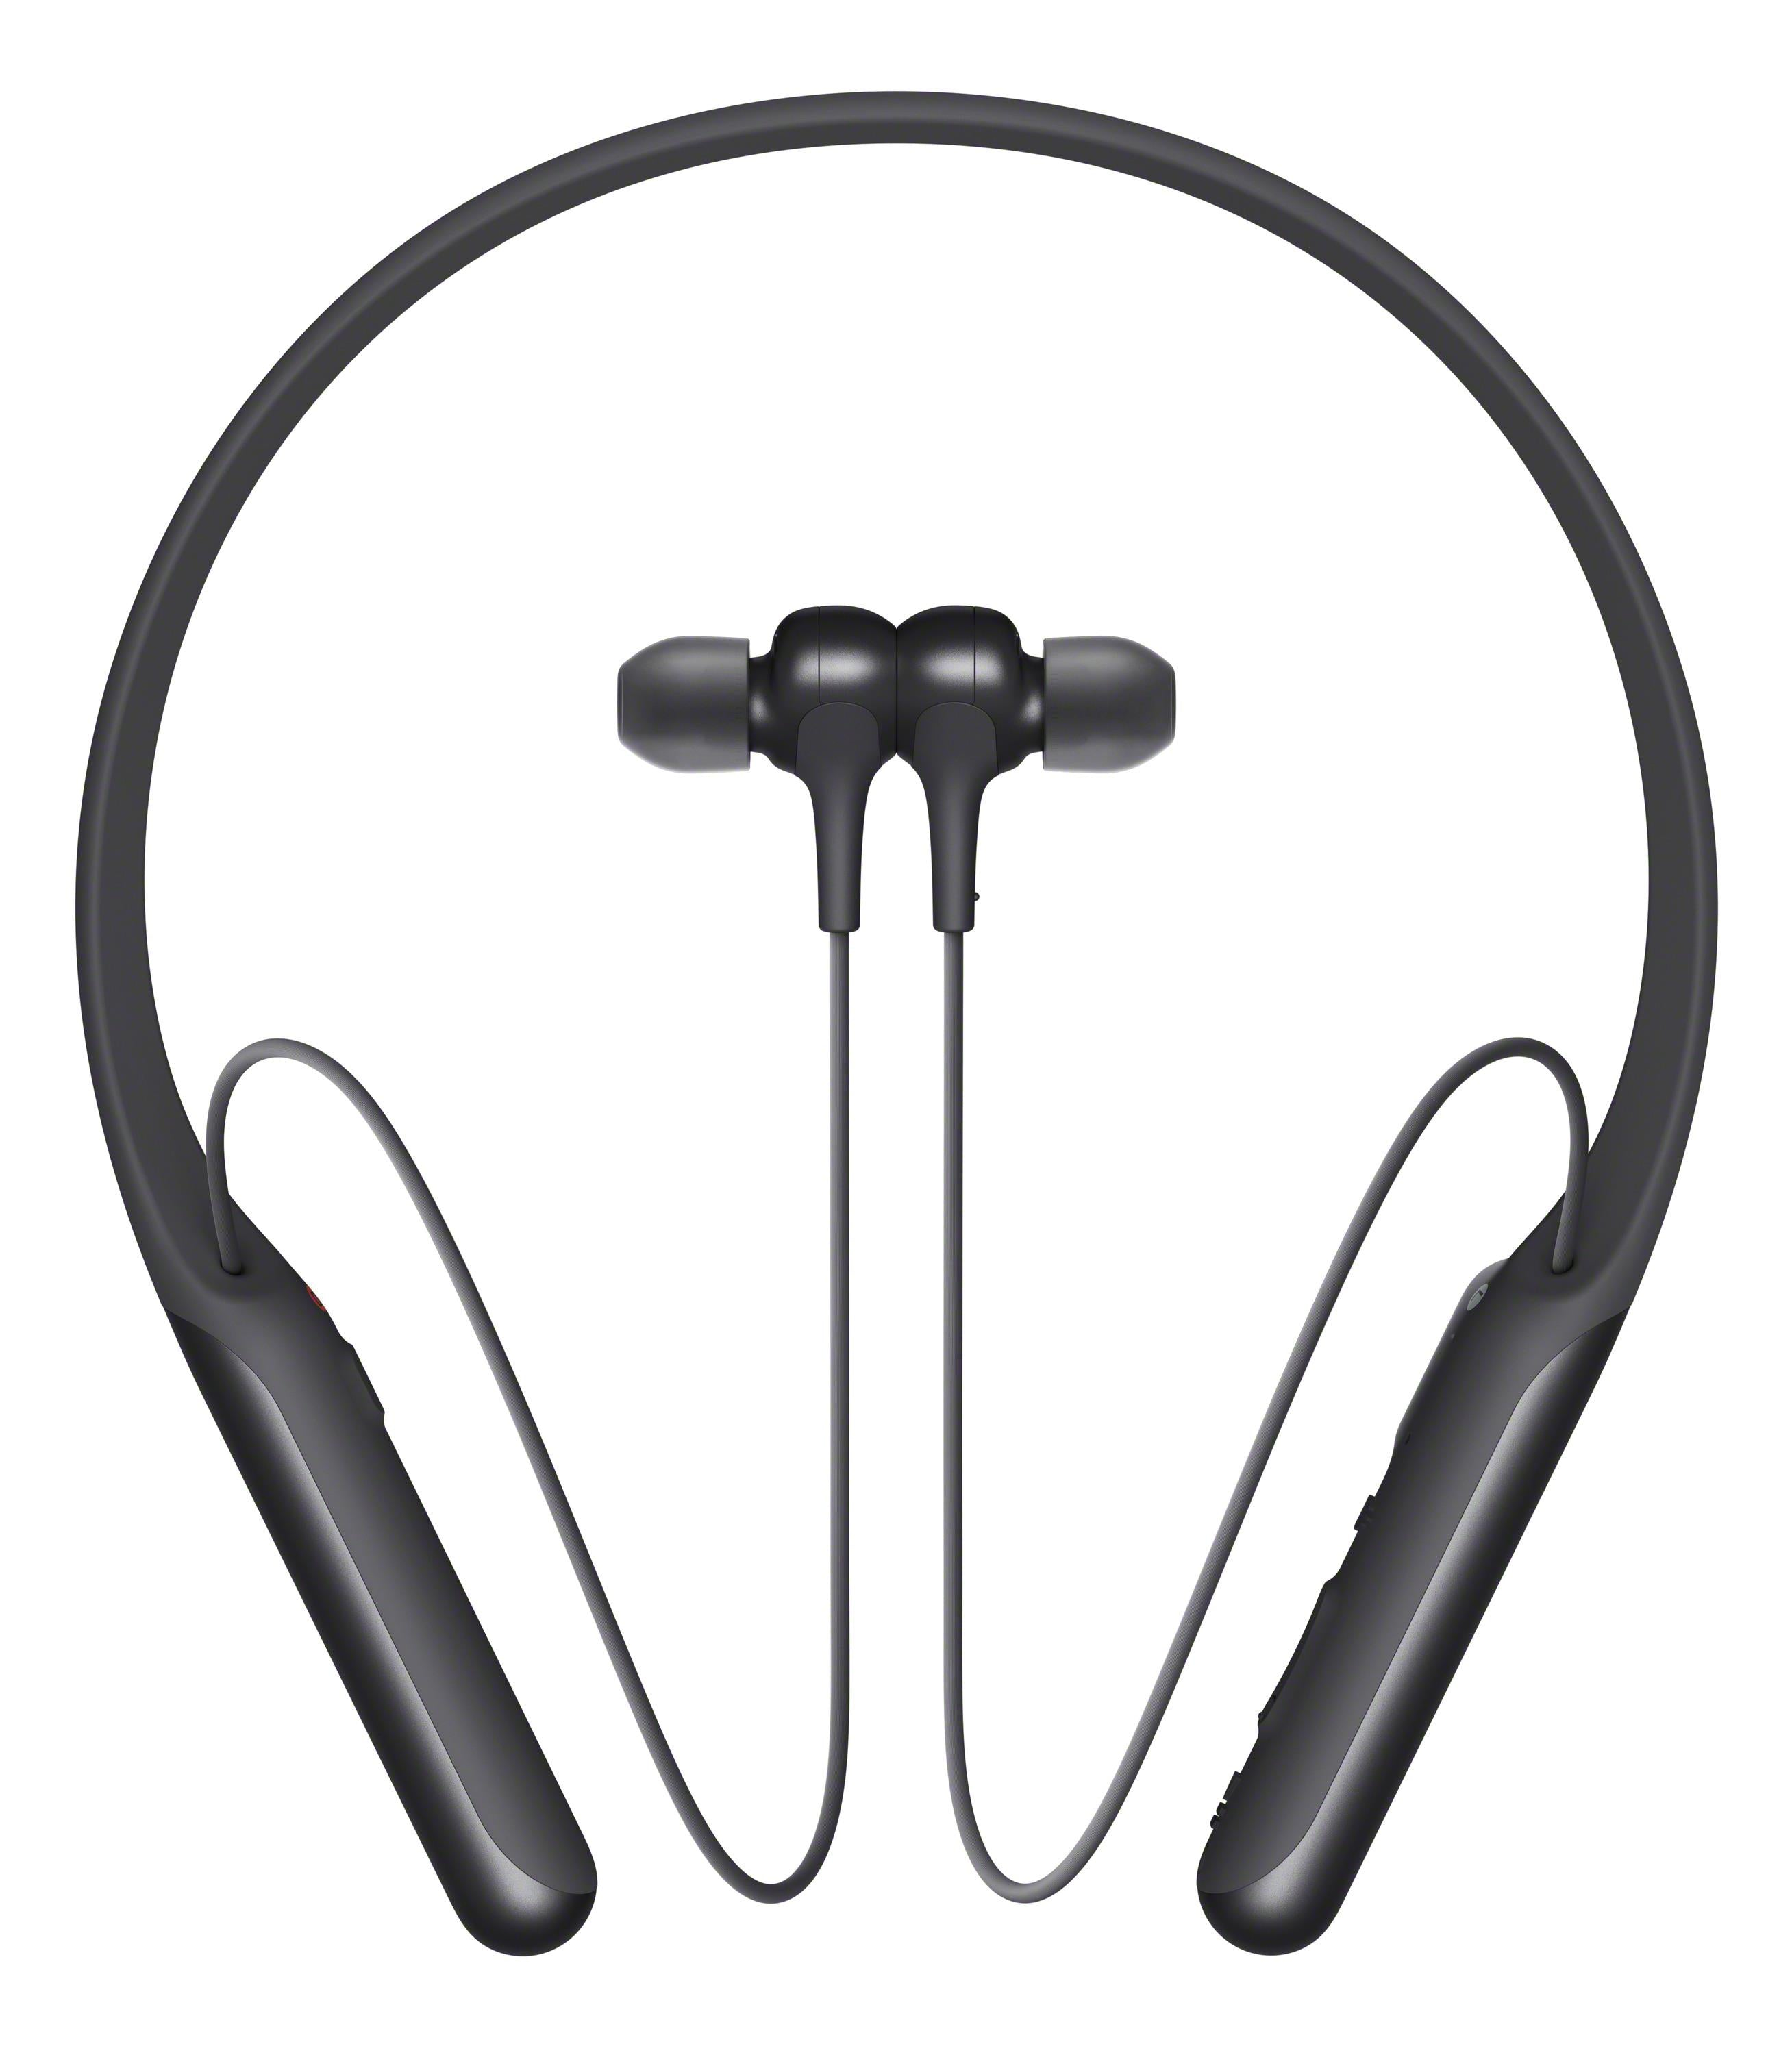 Sony Wireless Noise Canceling In-ear Headphones